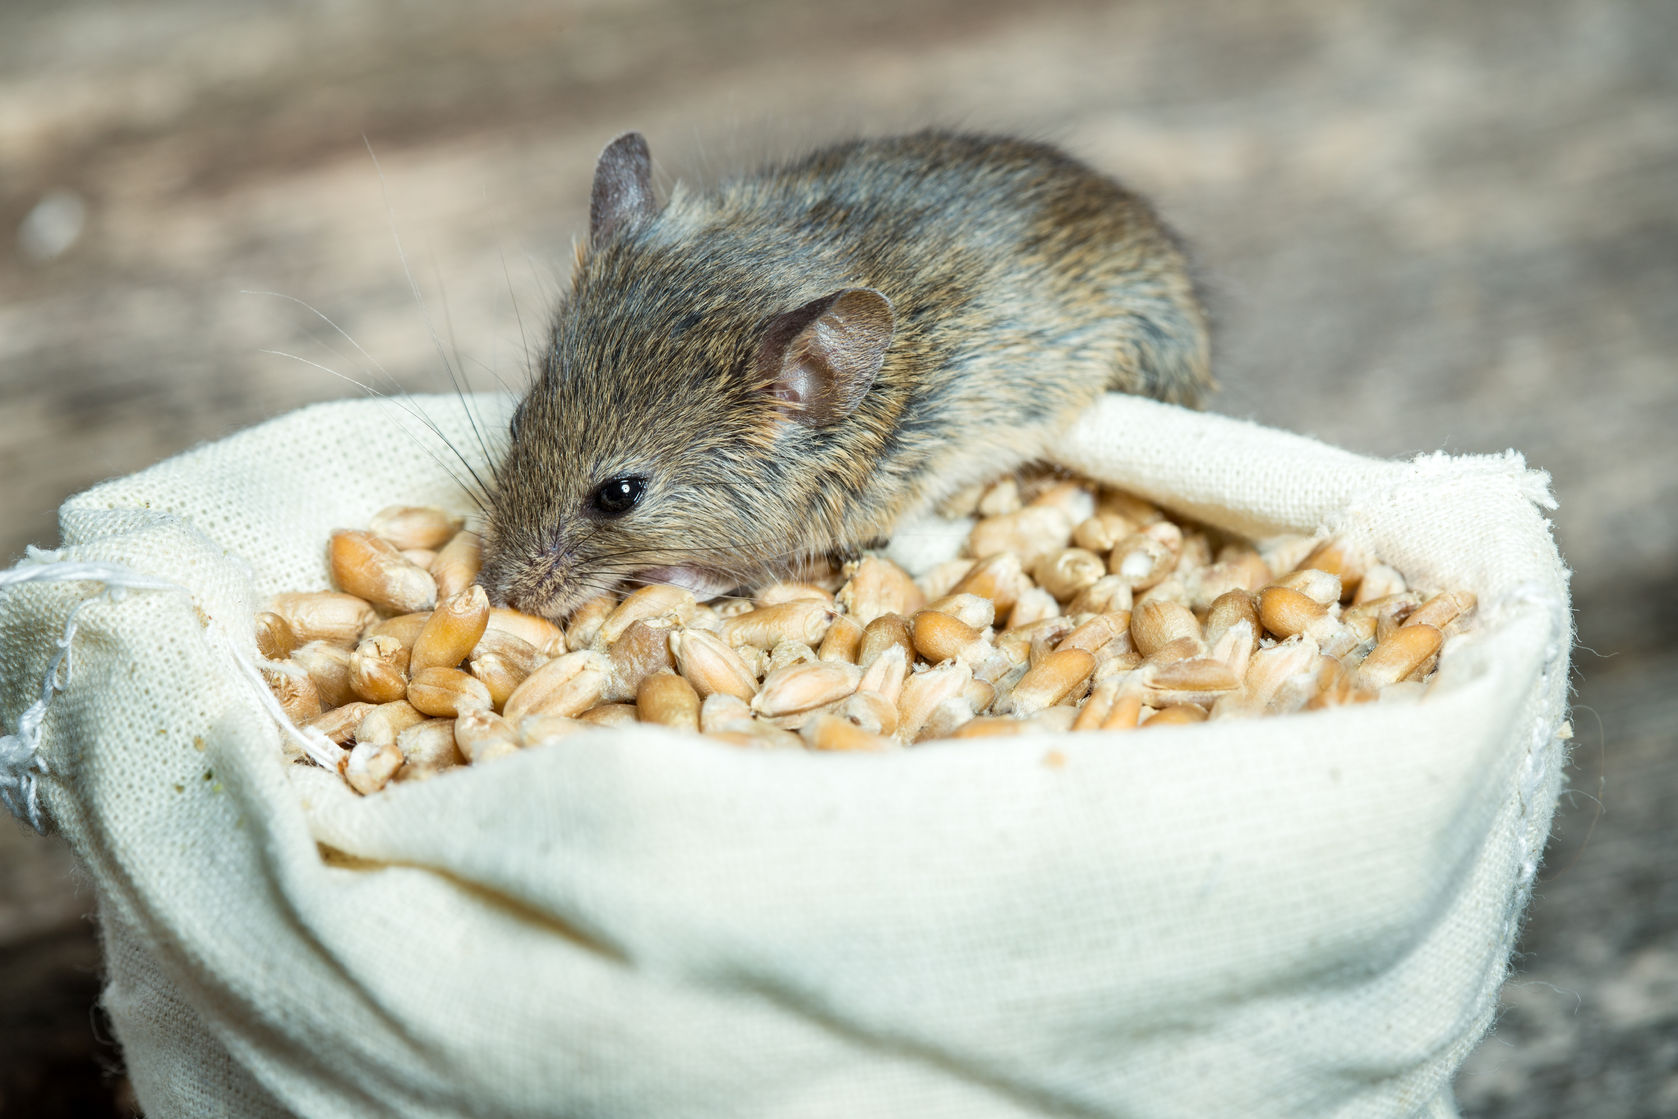 'There is no getting away from it,' the mice plague riddles Dubbo